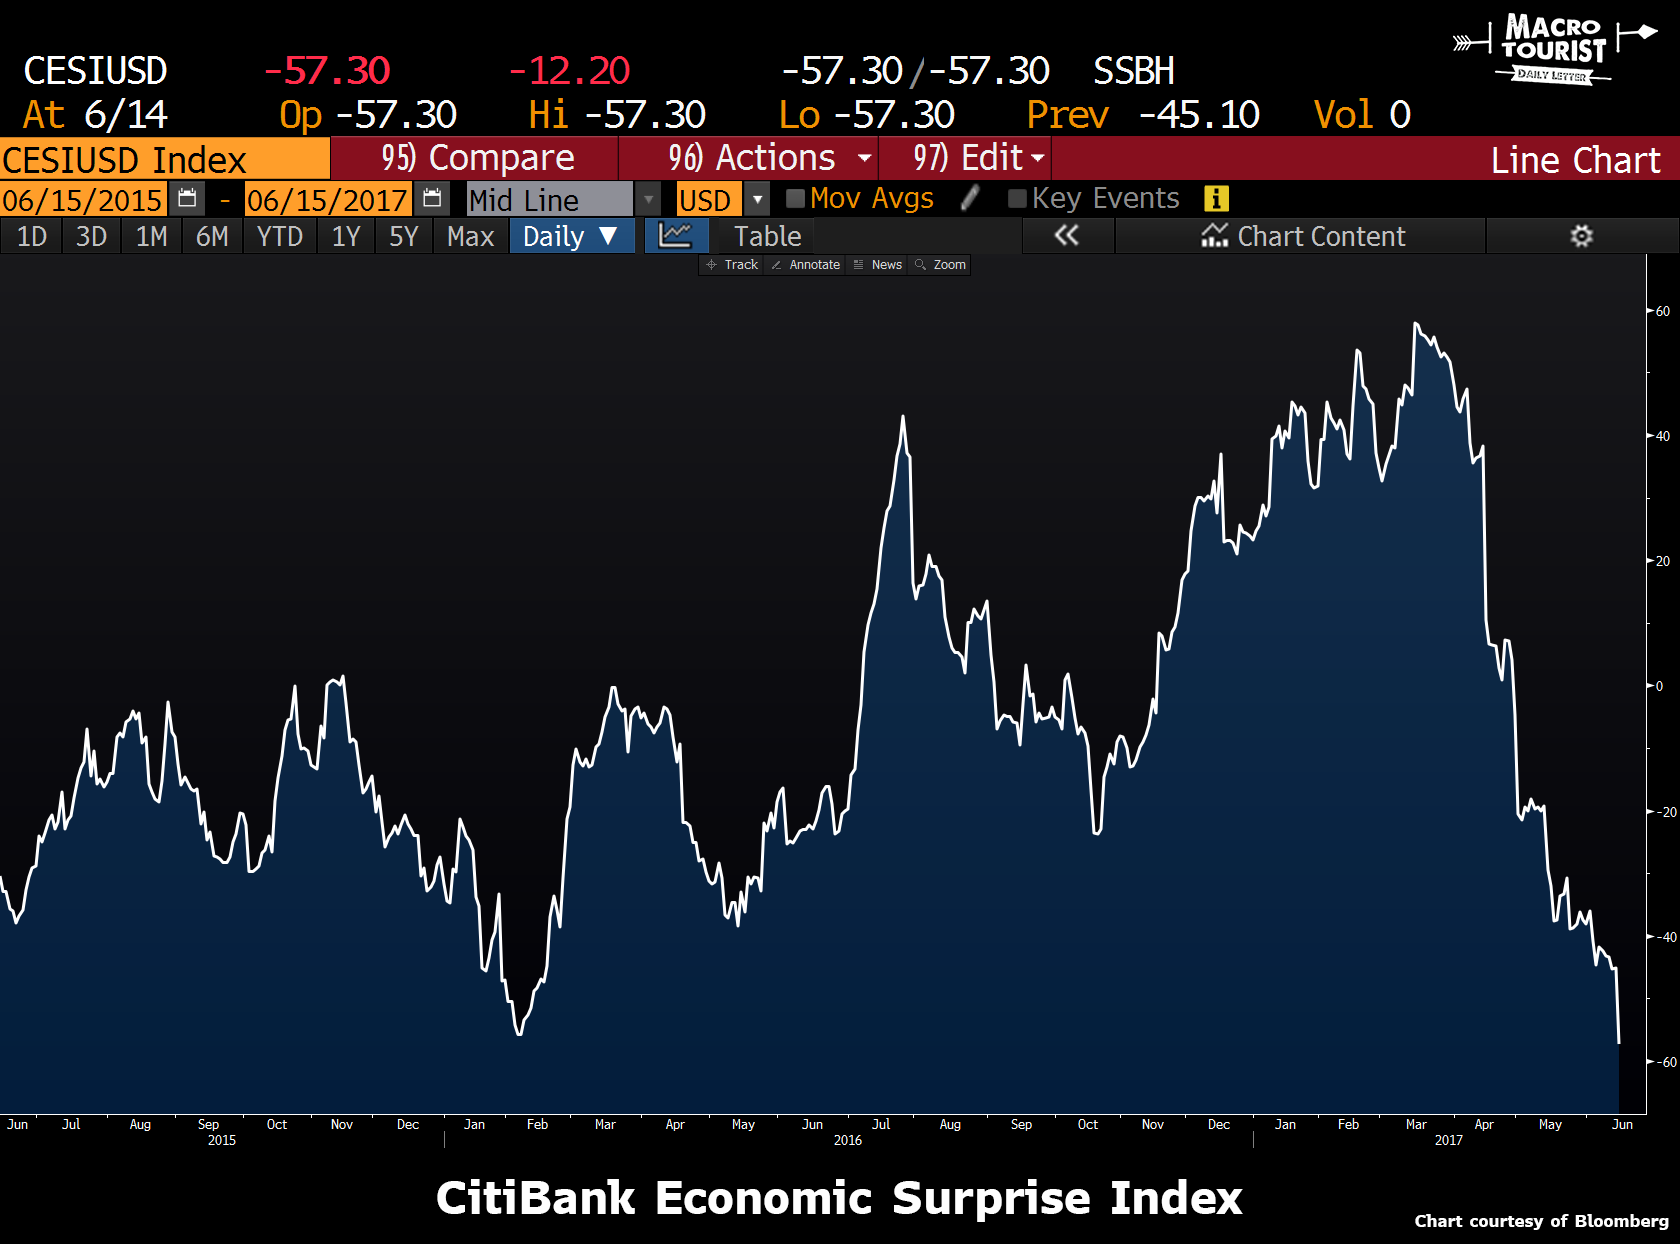 CitiBank Economic Surprise Index, 2015 - 2017